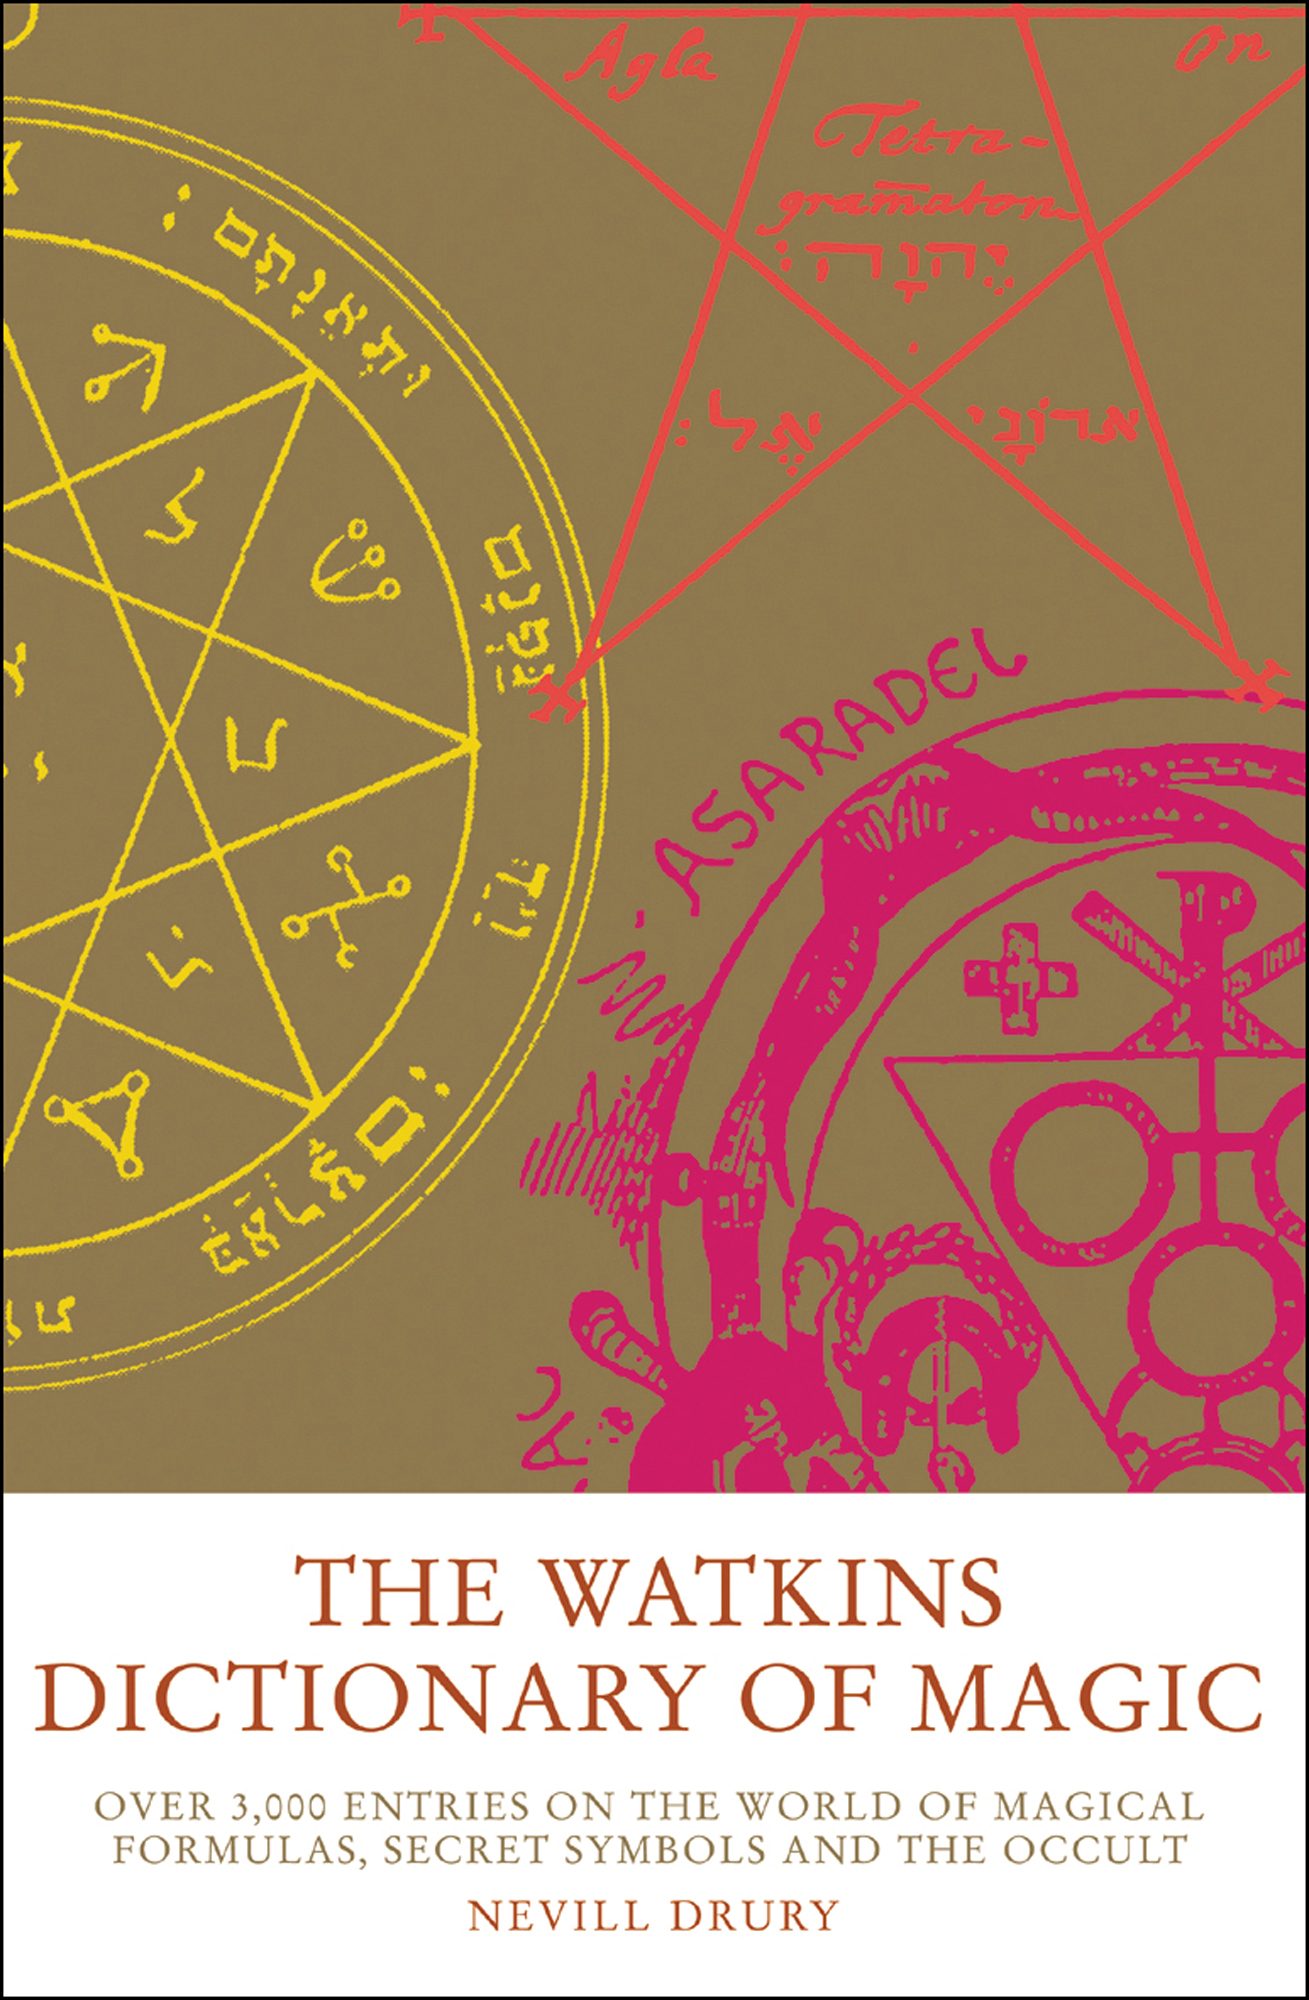 The Watkins Dictionary of Magic: Over 3000 Entries on the World of Magical Formulas,  Secret Symbols and the Occult